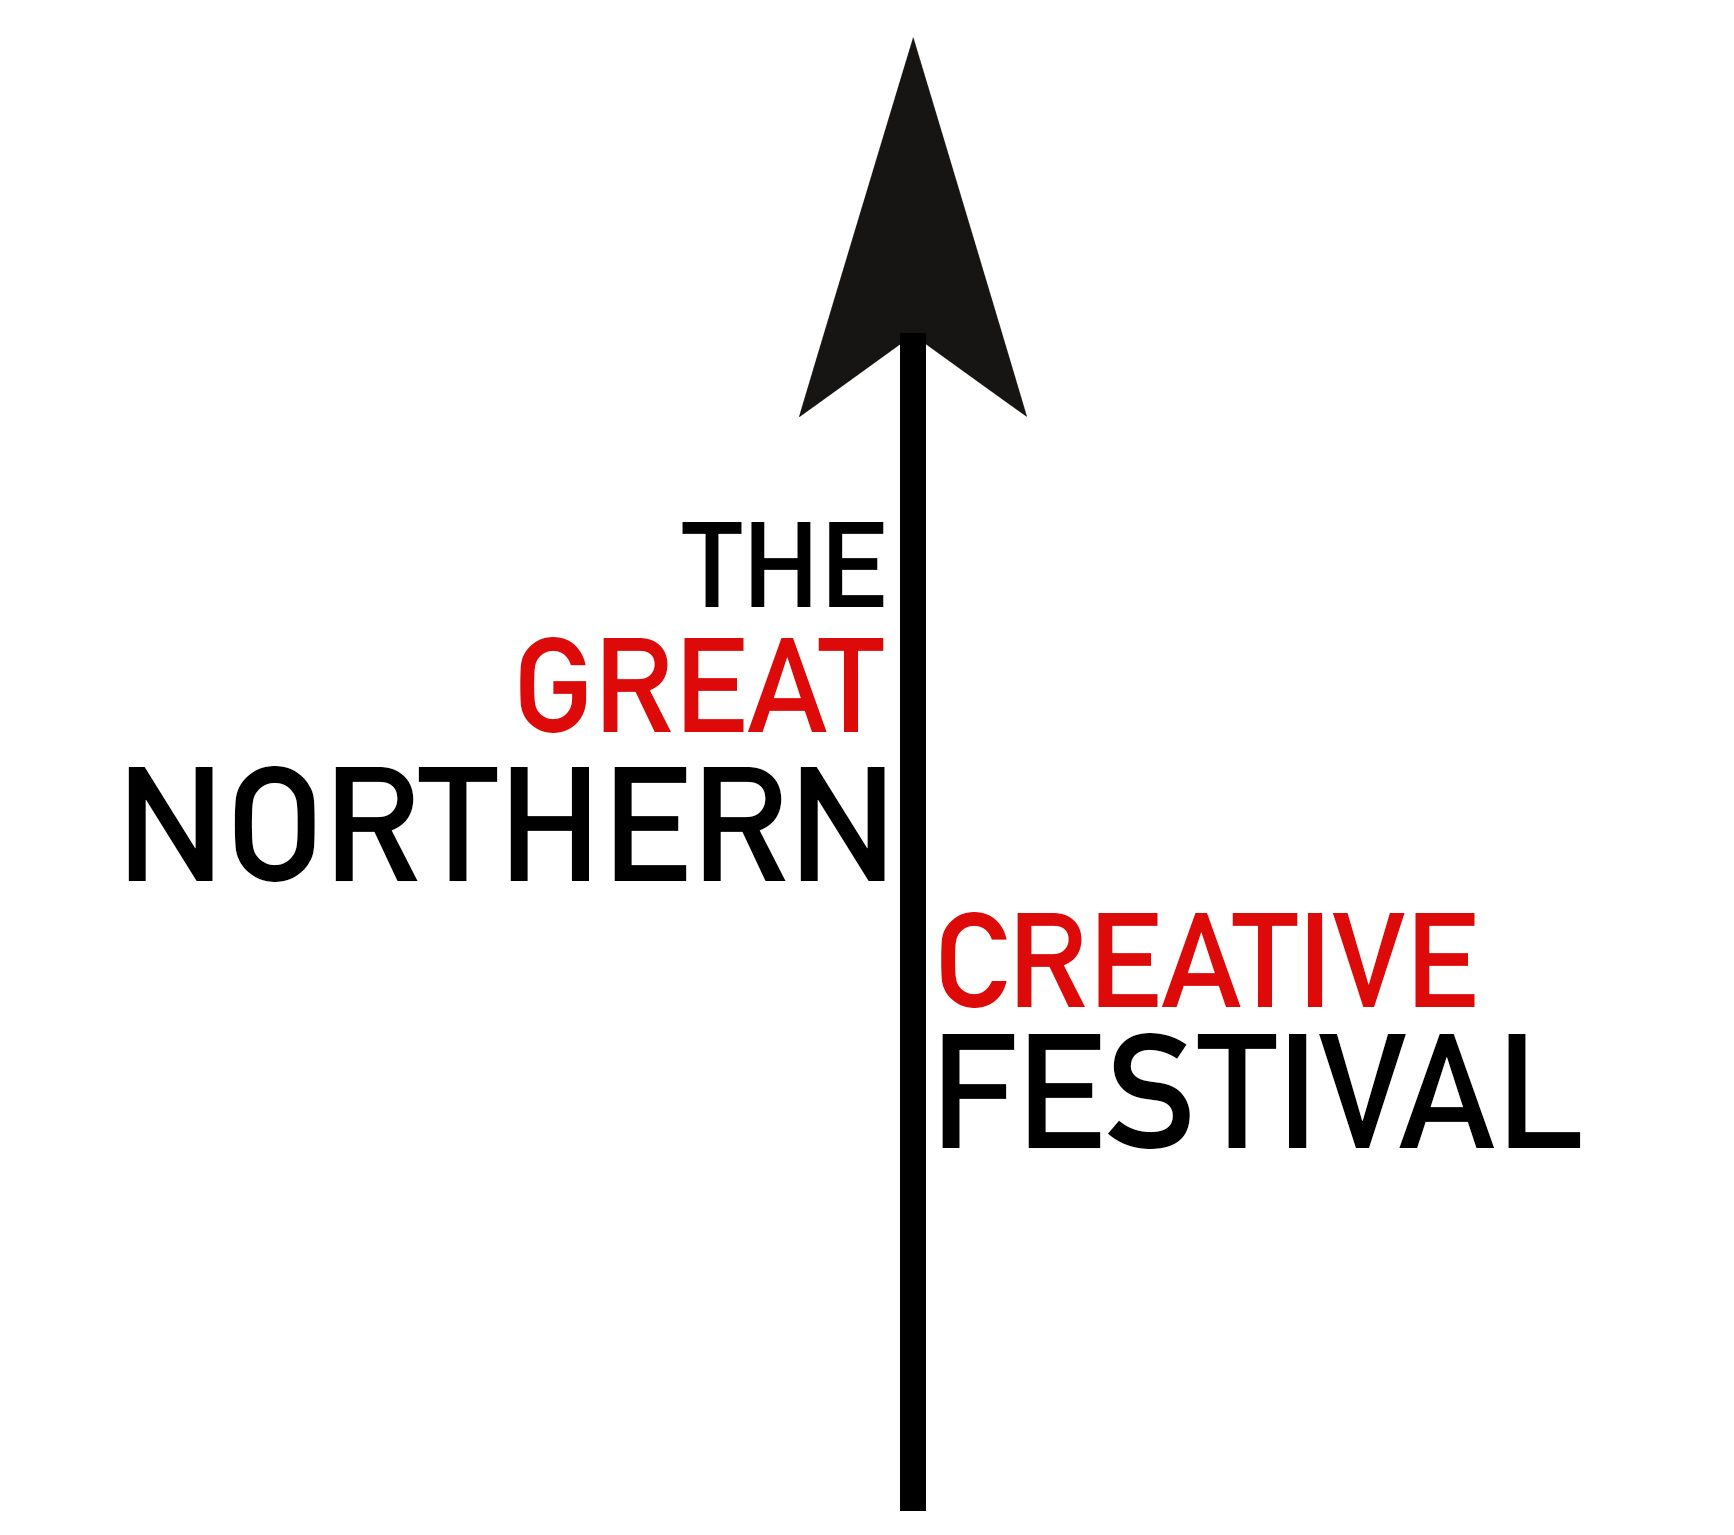 THE GREAT NORTHERN CREATIVE FESTIVAL